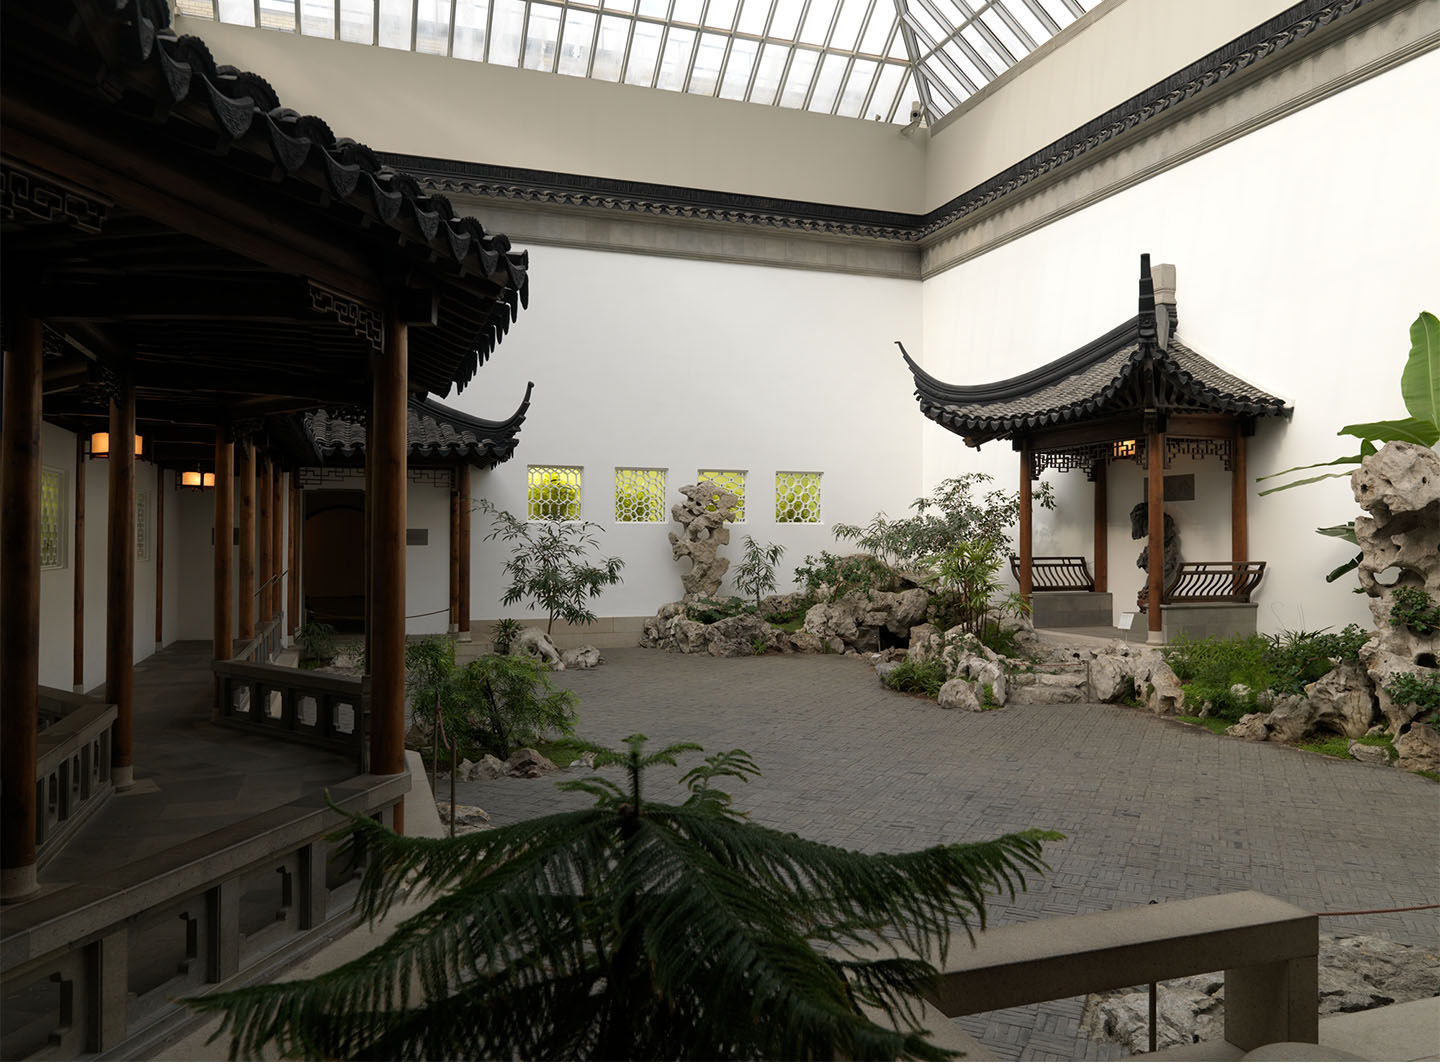 An interior courtyard with pagodas, plantings, ornamental rocks, and a fish pond